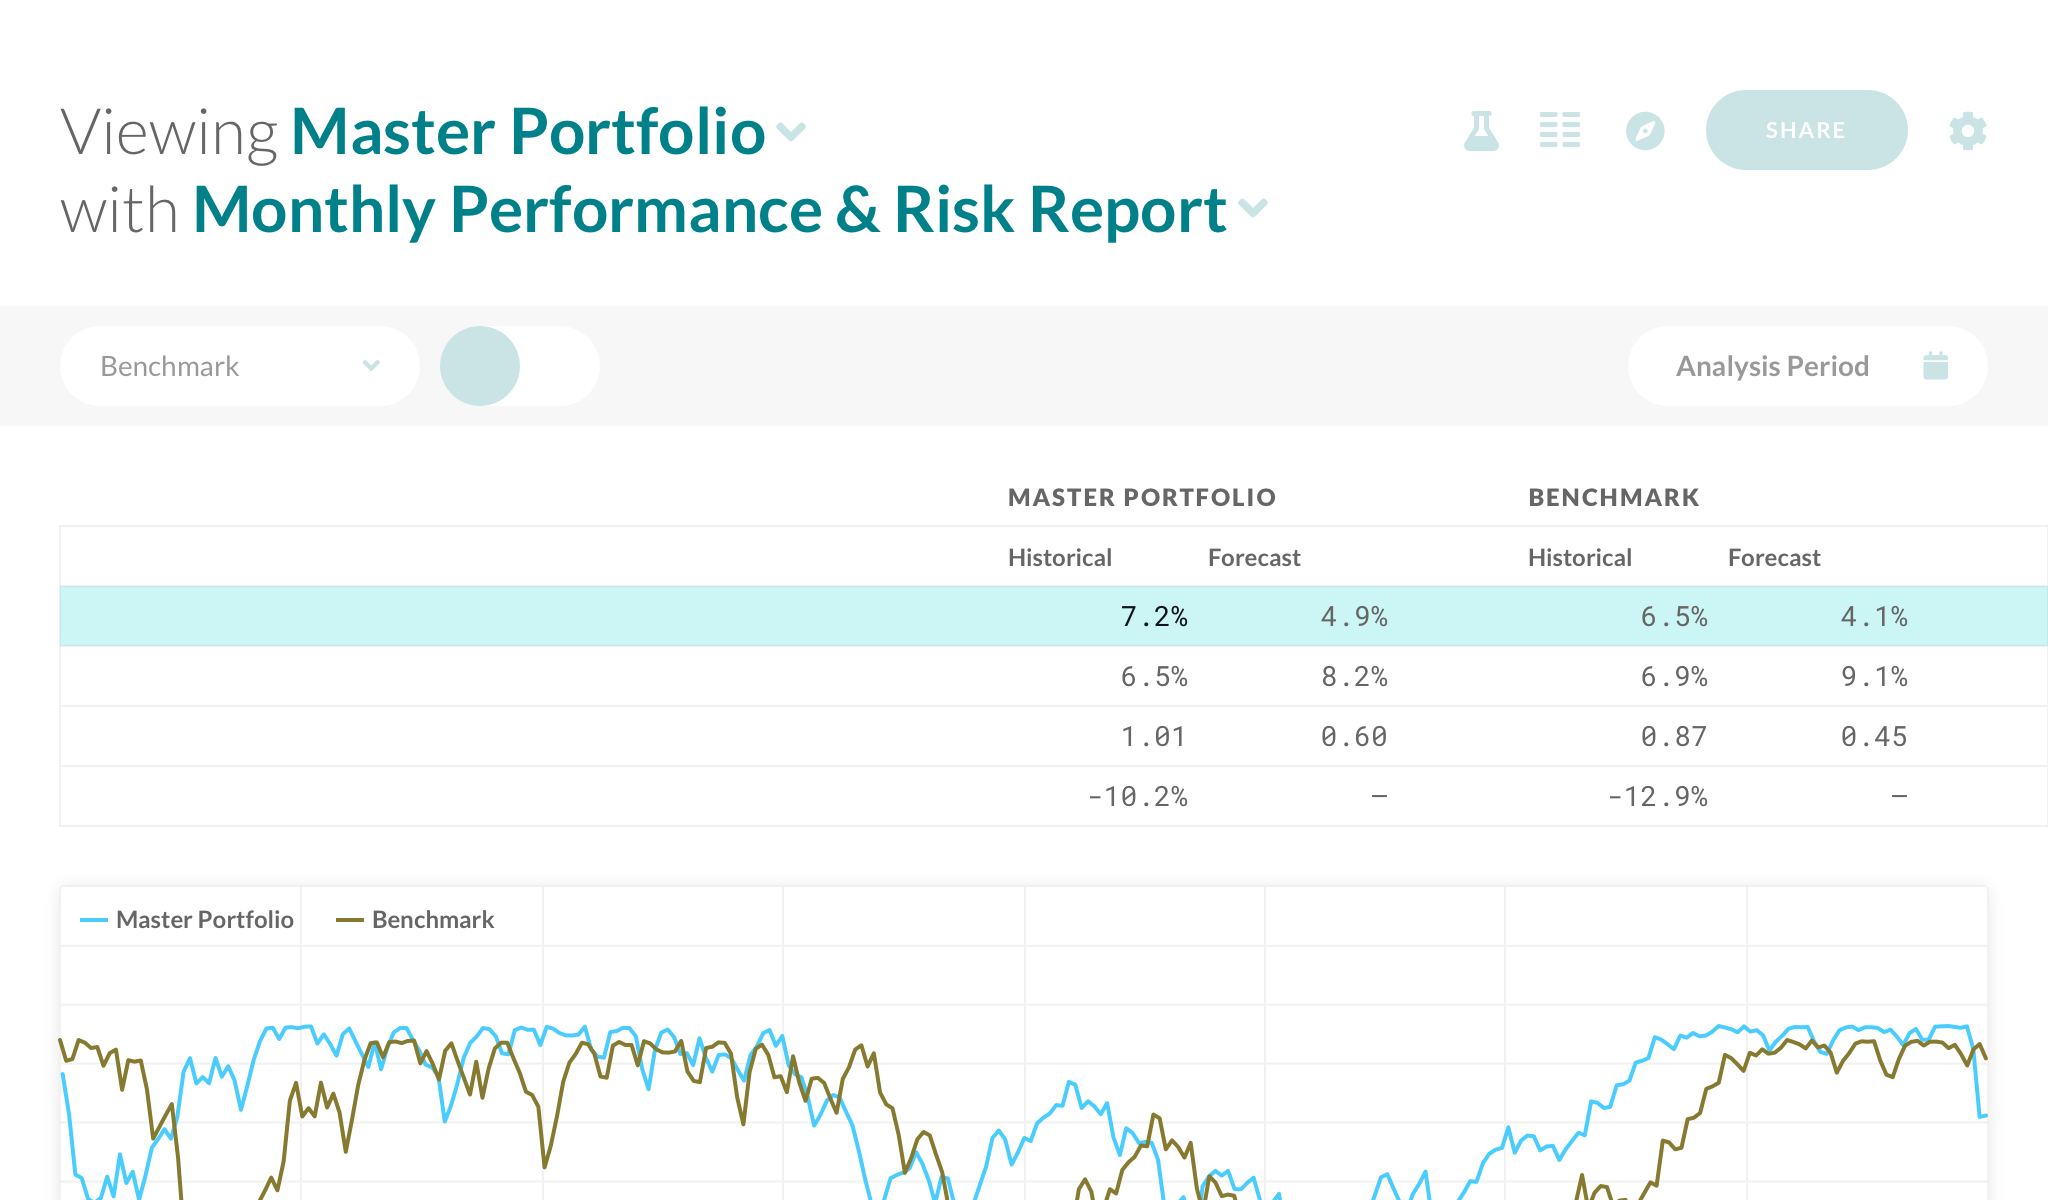 Performance & Risk Reporting